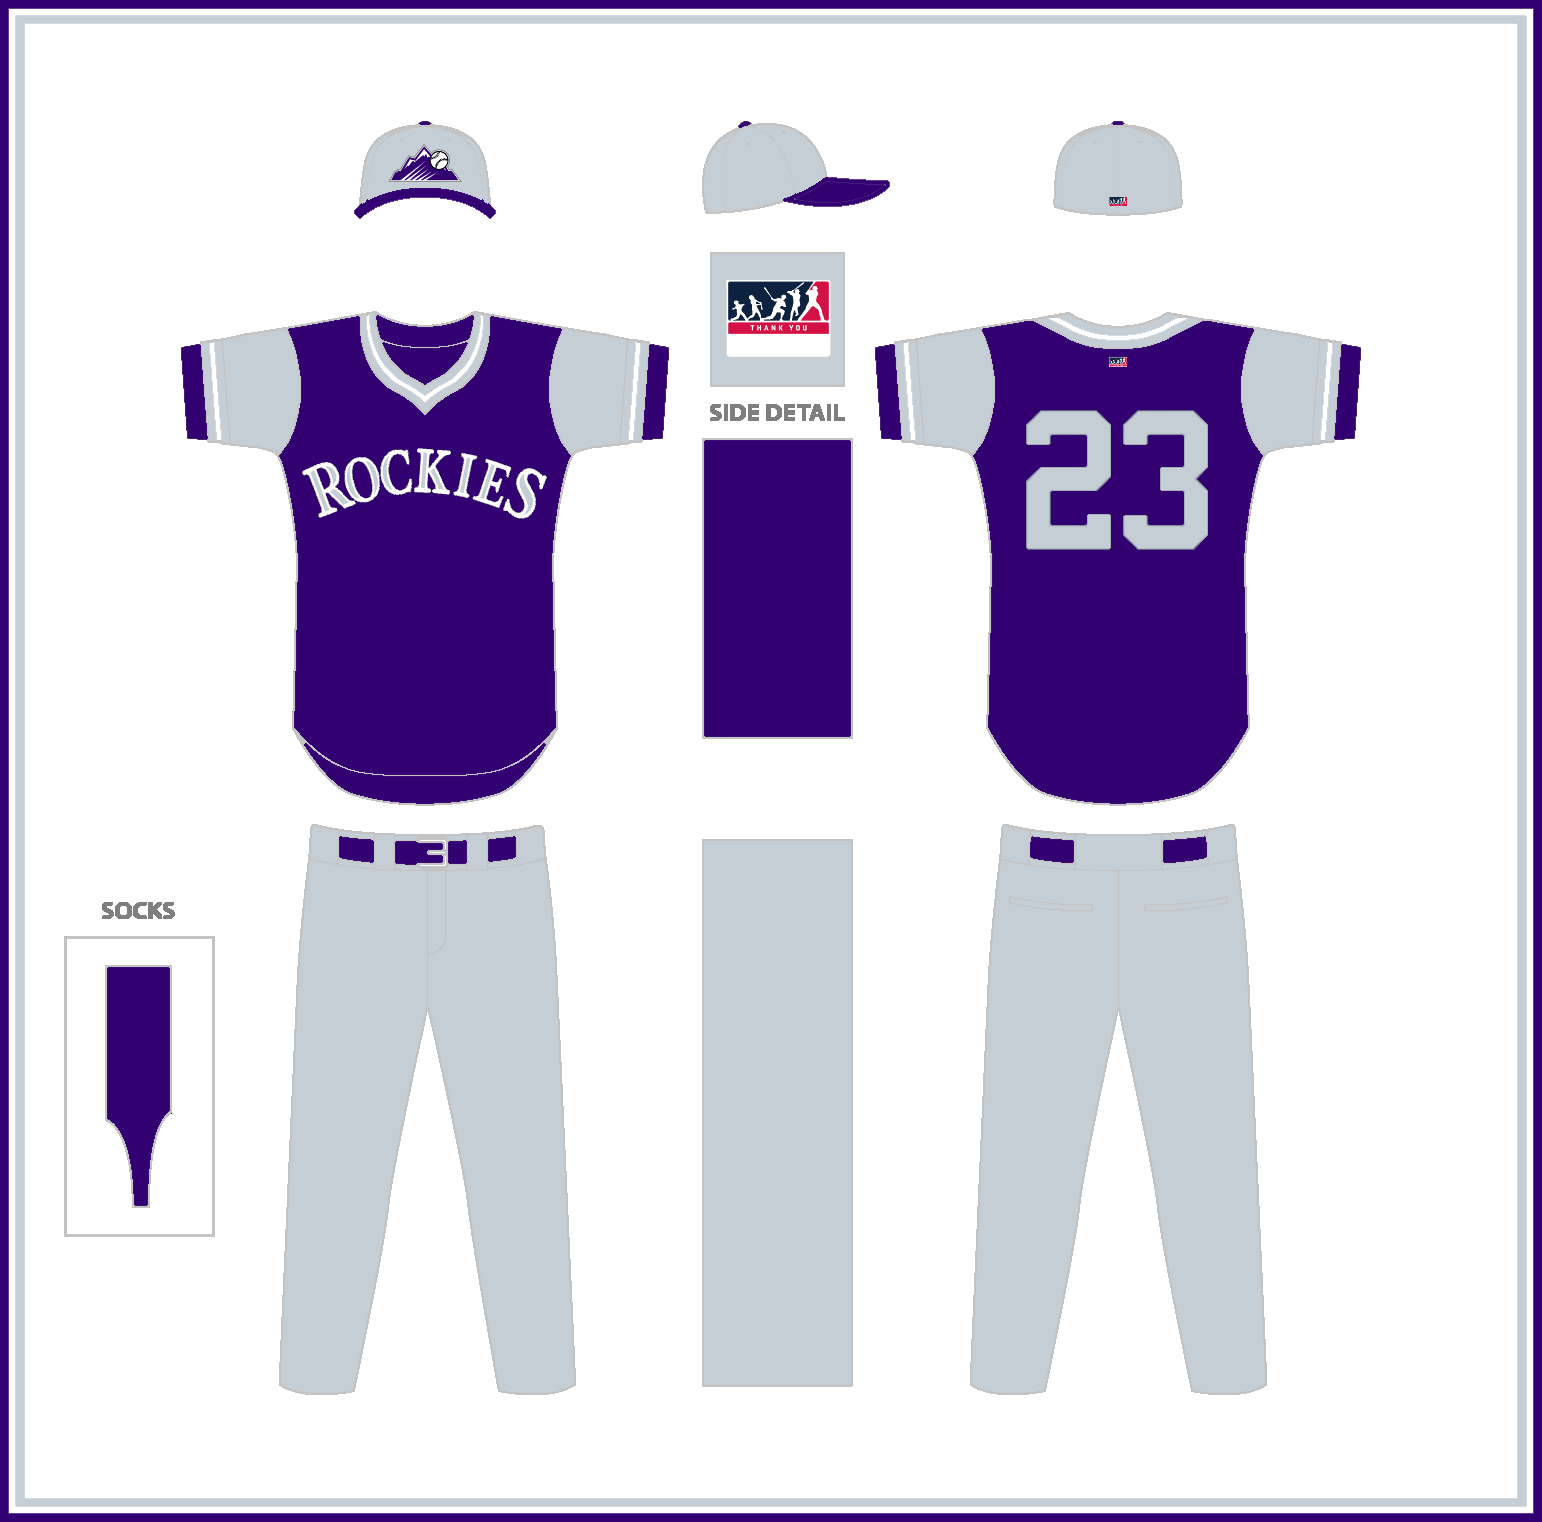 Rockies_Players_Weekend_Template.png